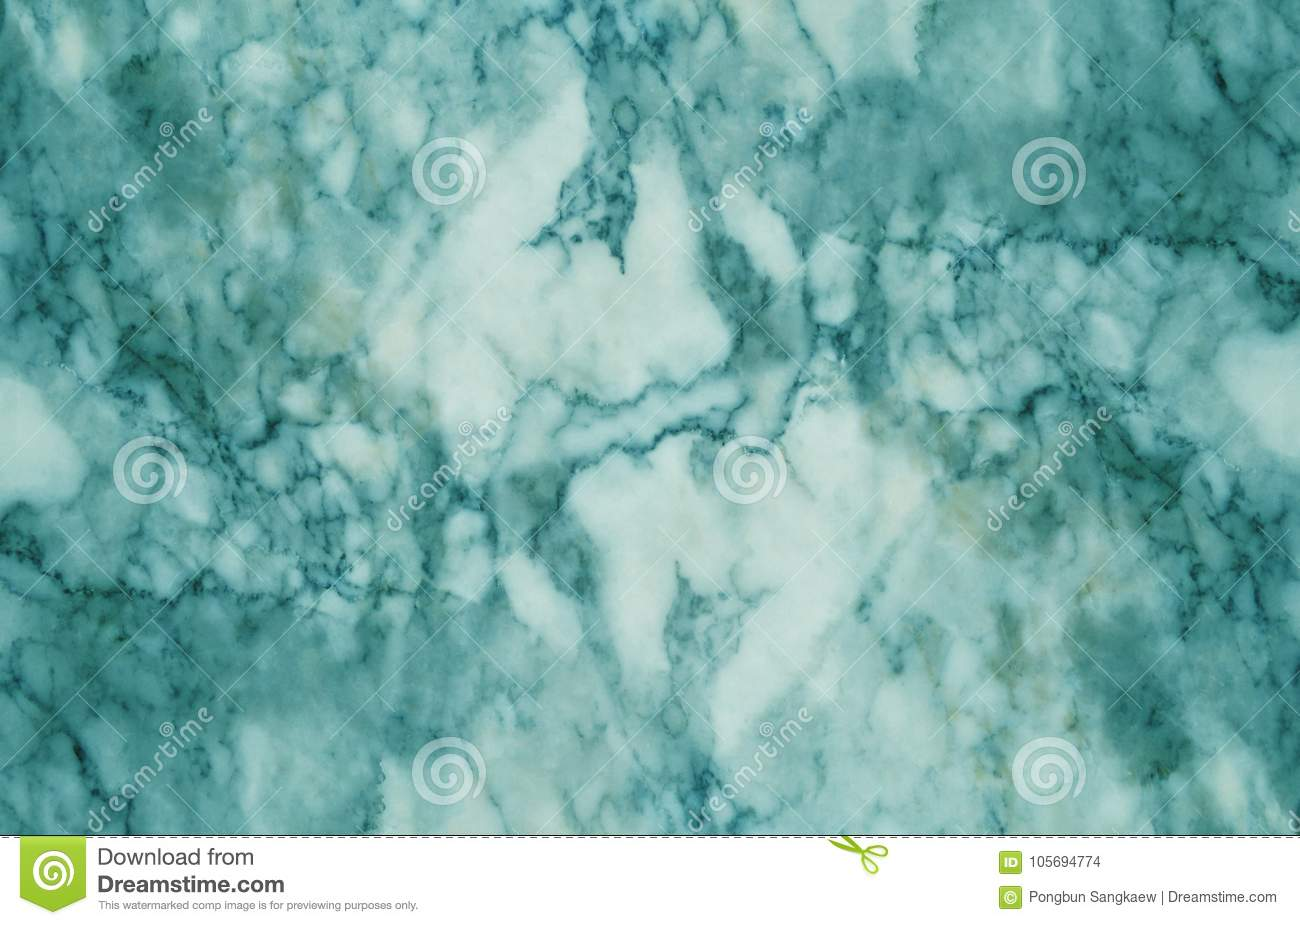 Blue And Green Marble Texture Nature Wallpaper Abstract Background Stock Photo Image Of Design Grey 105694774